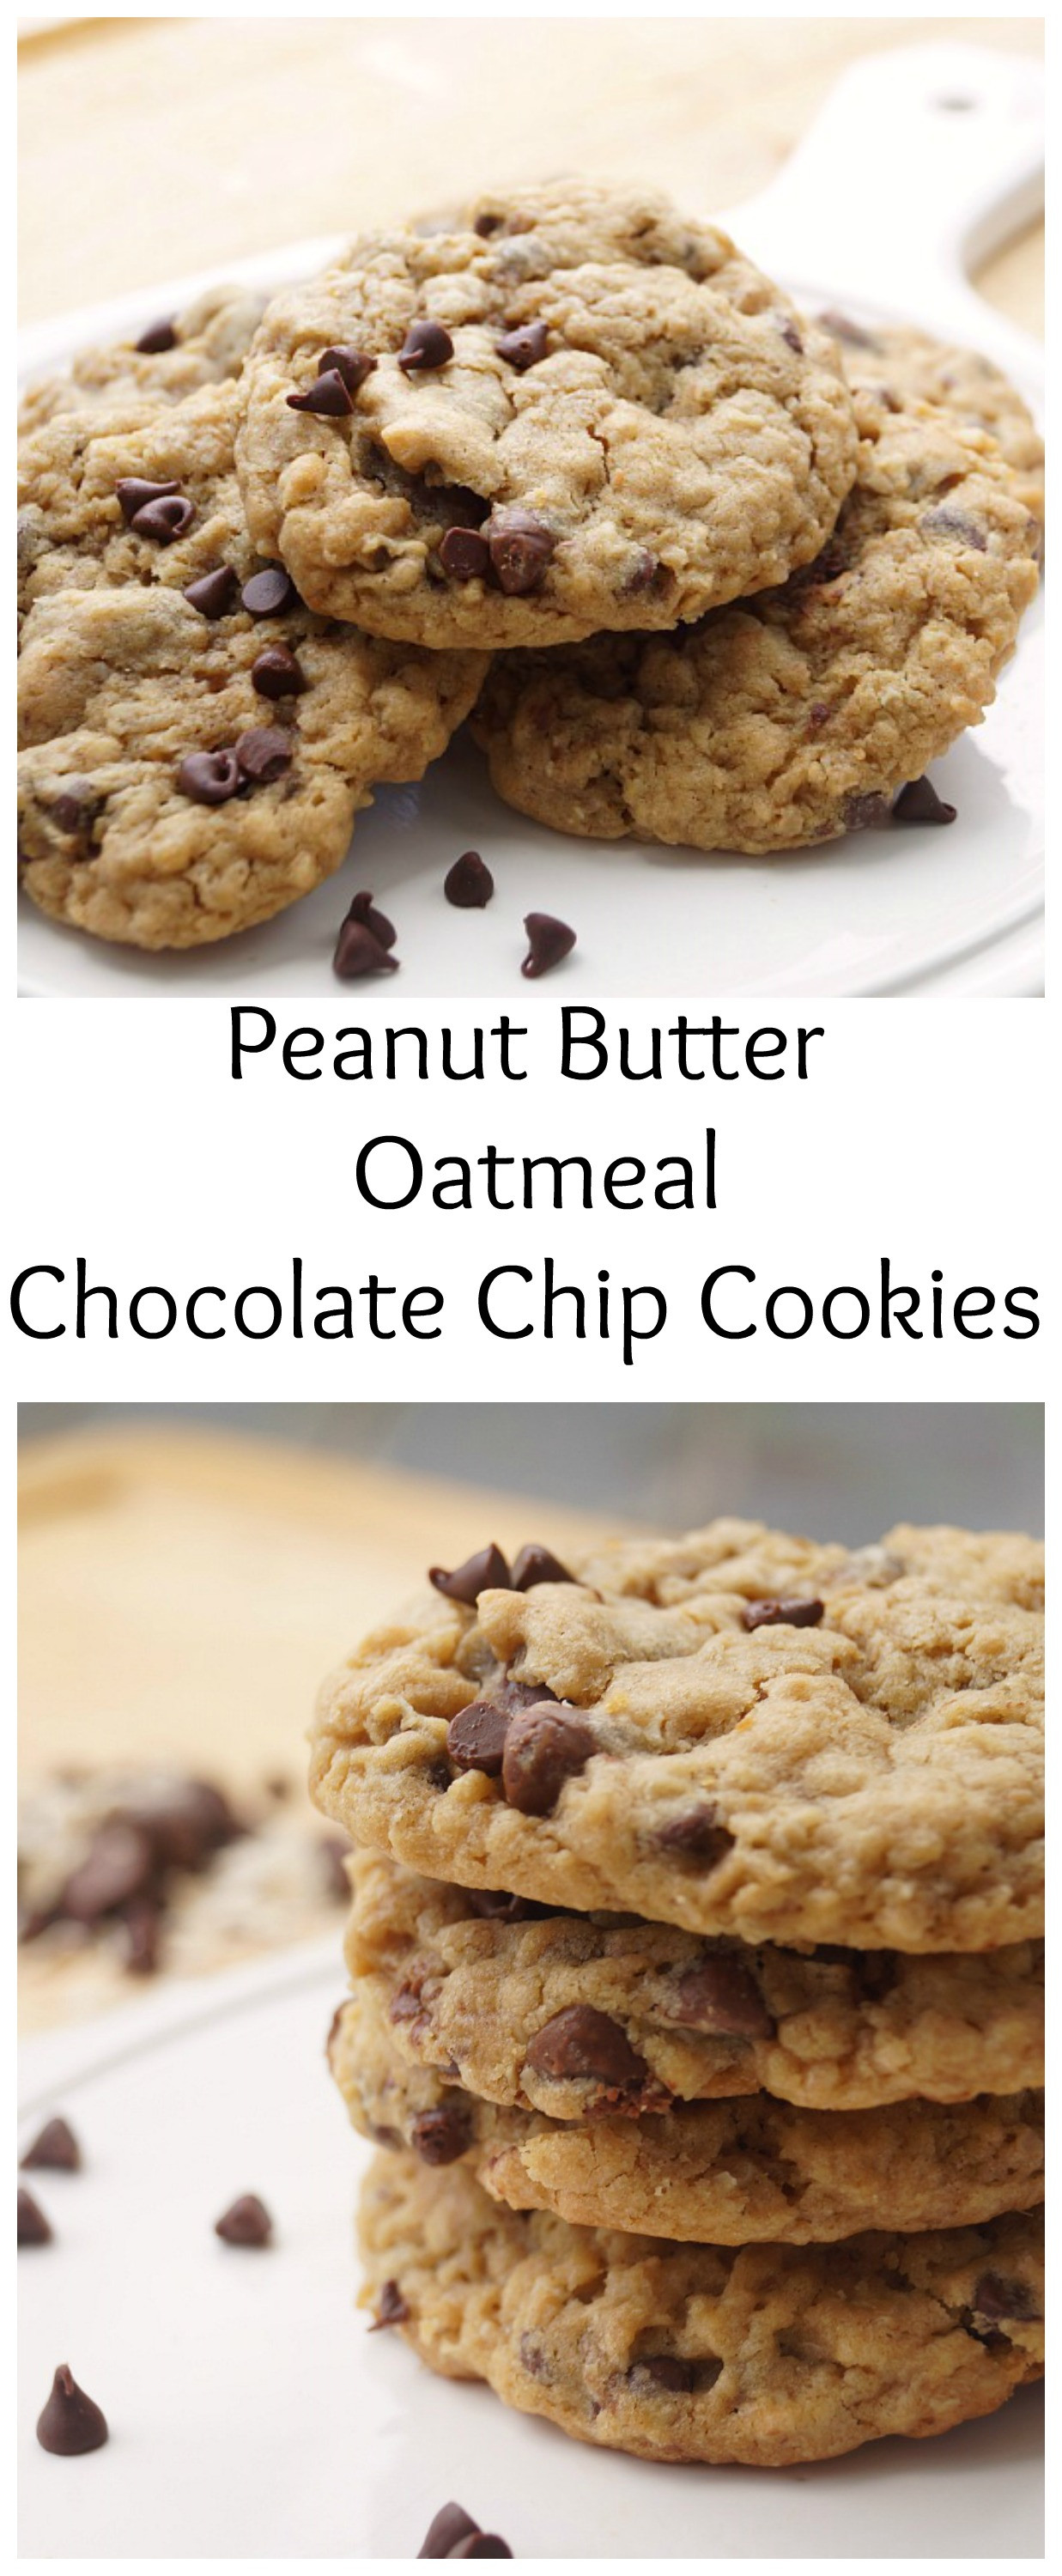 Healthy Peanut Butter Oatmeal Chocolate Chip Cookies  Peanut Butter Oatmeal Chocolate Chip Cookies